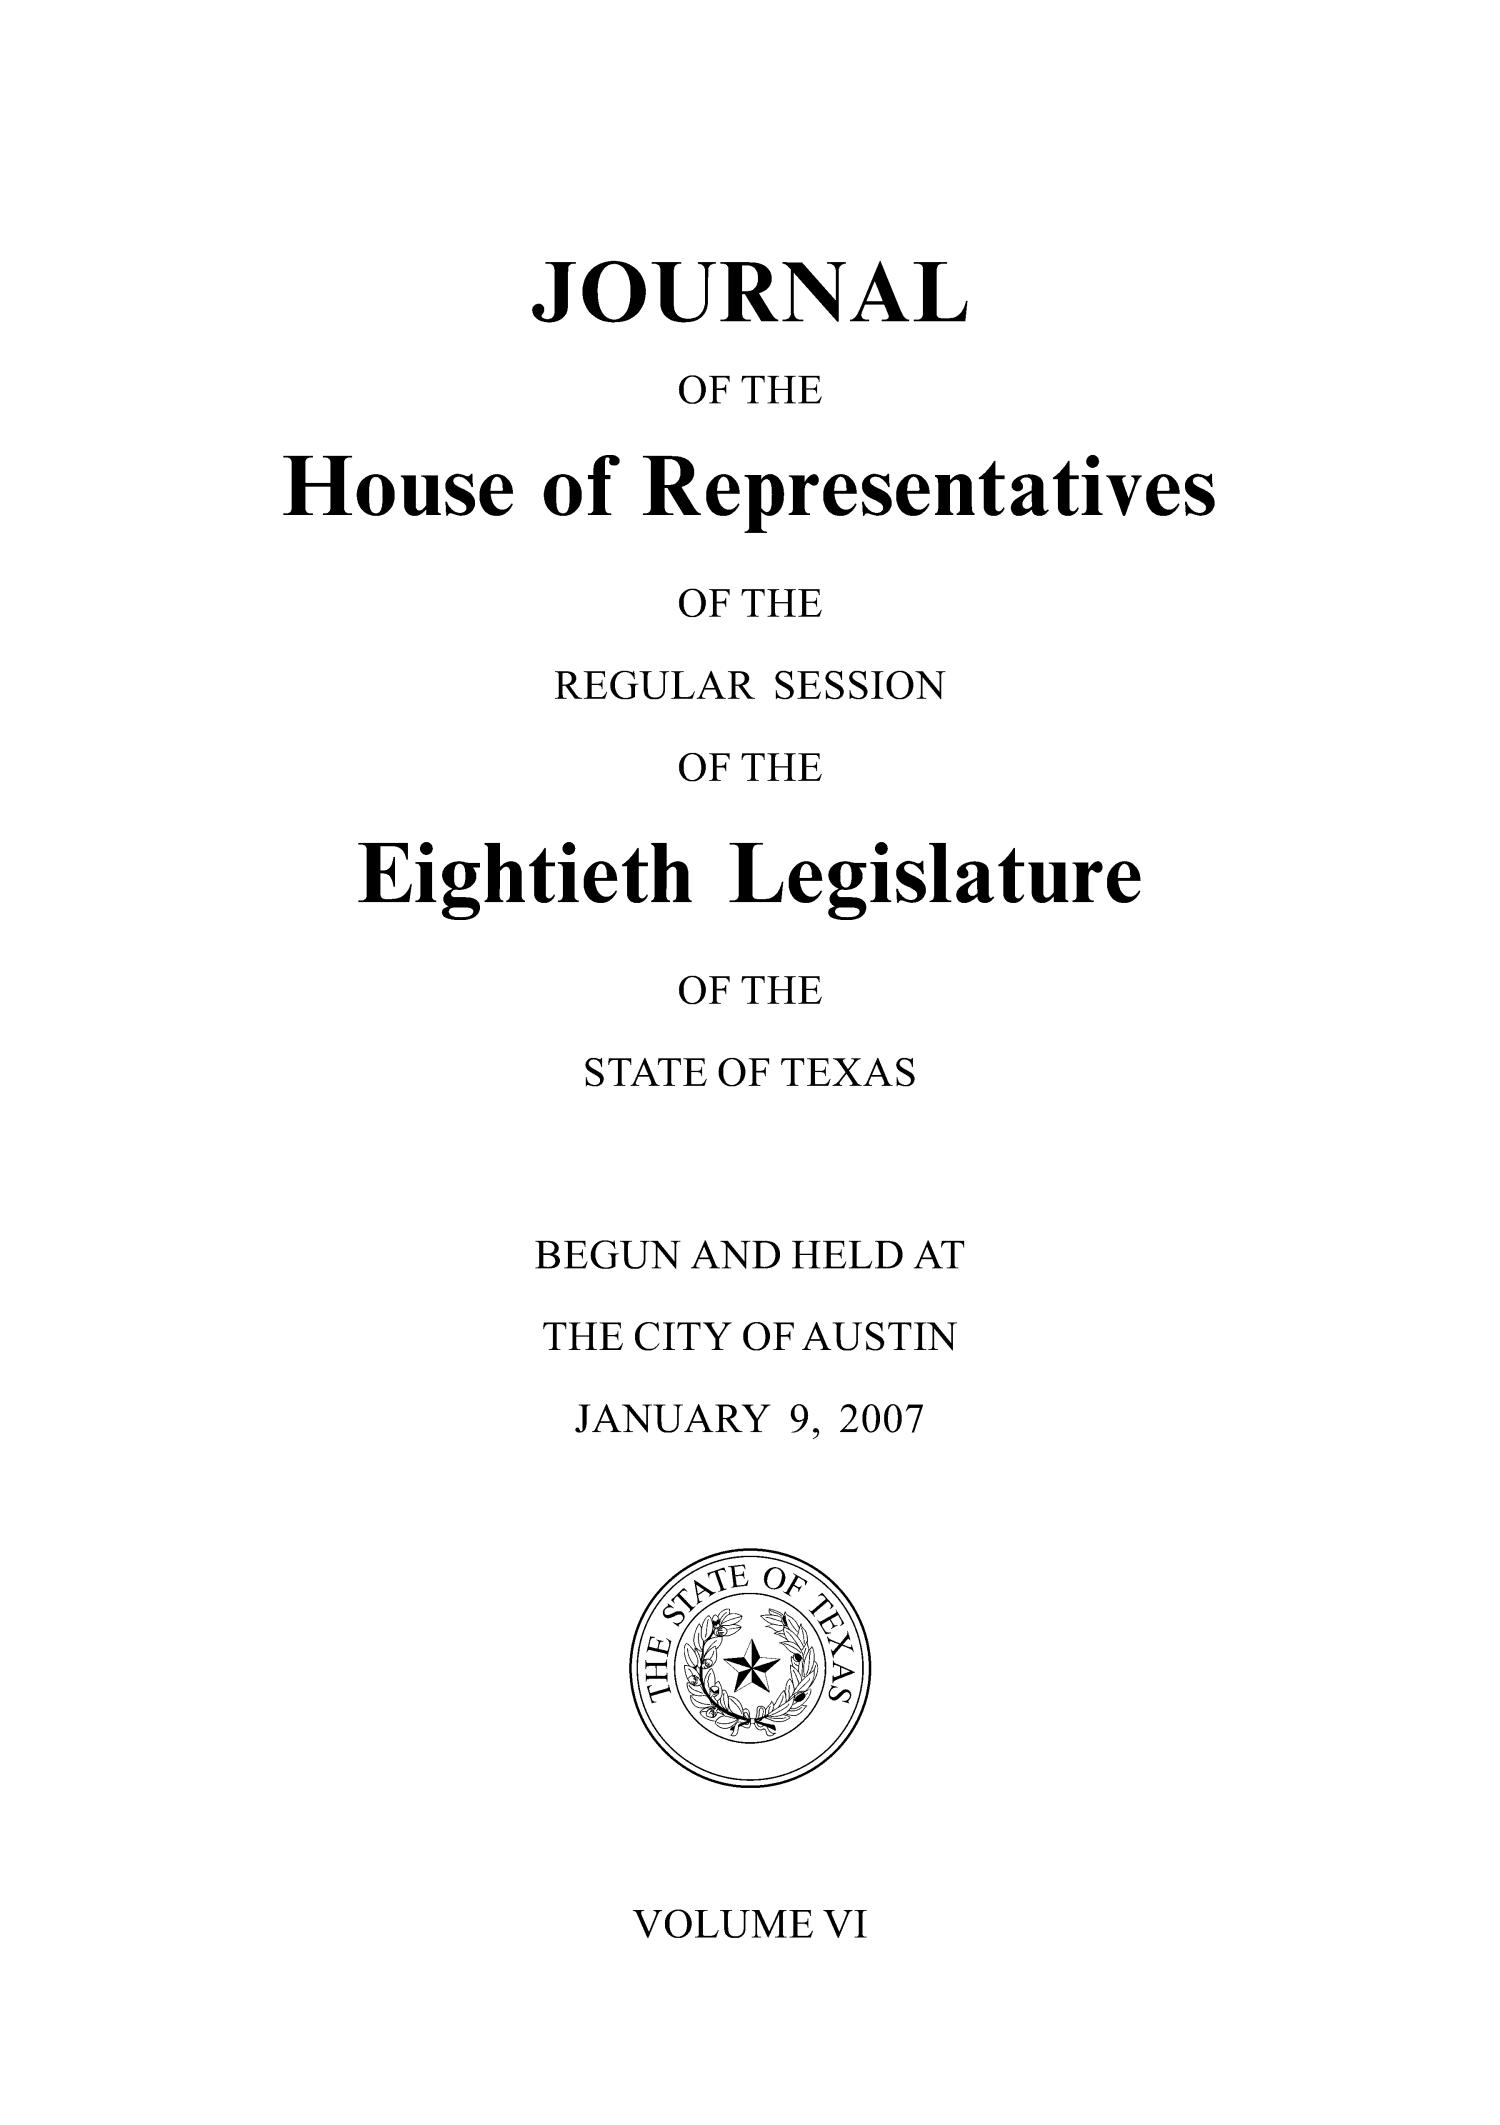 Journal of the House of Representatives of the Regular Session of the Eightieth Legislature of the State of Texas, Volume 6                                                                                                      Title Page